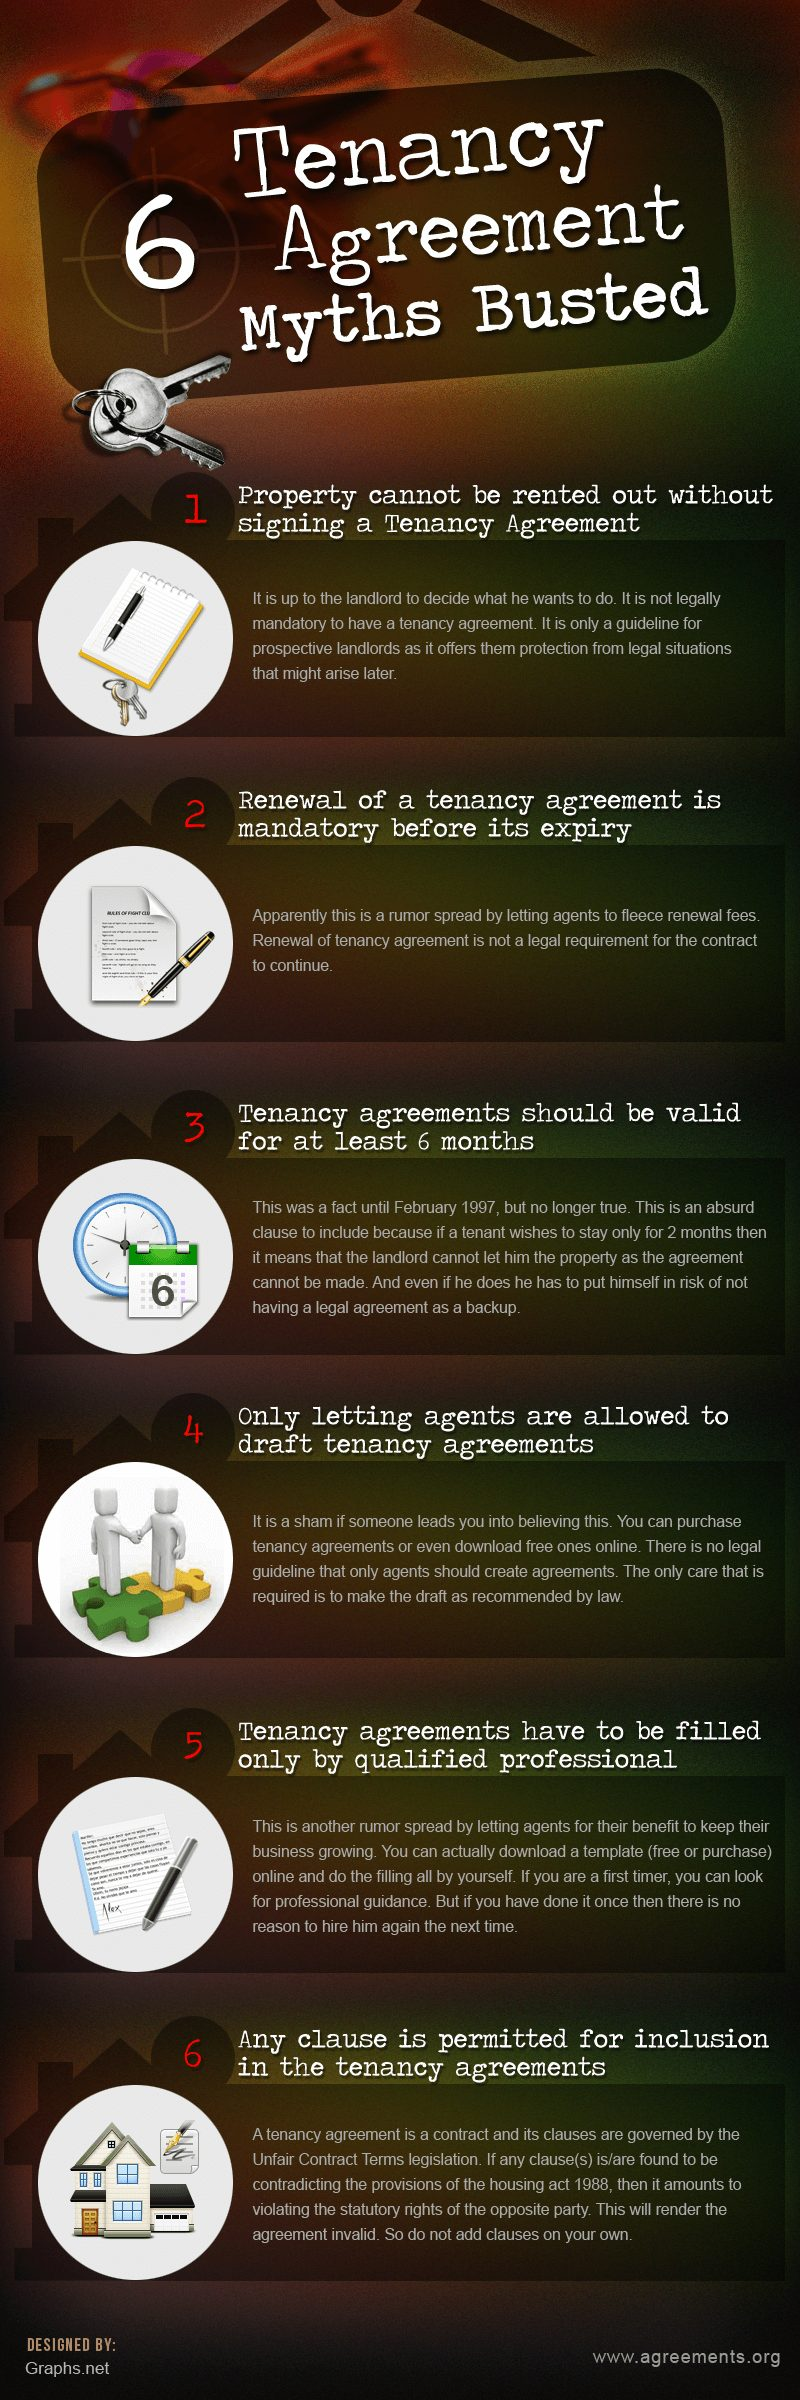 6-Tenancy-Agreement-Myths-Busted